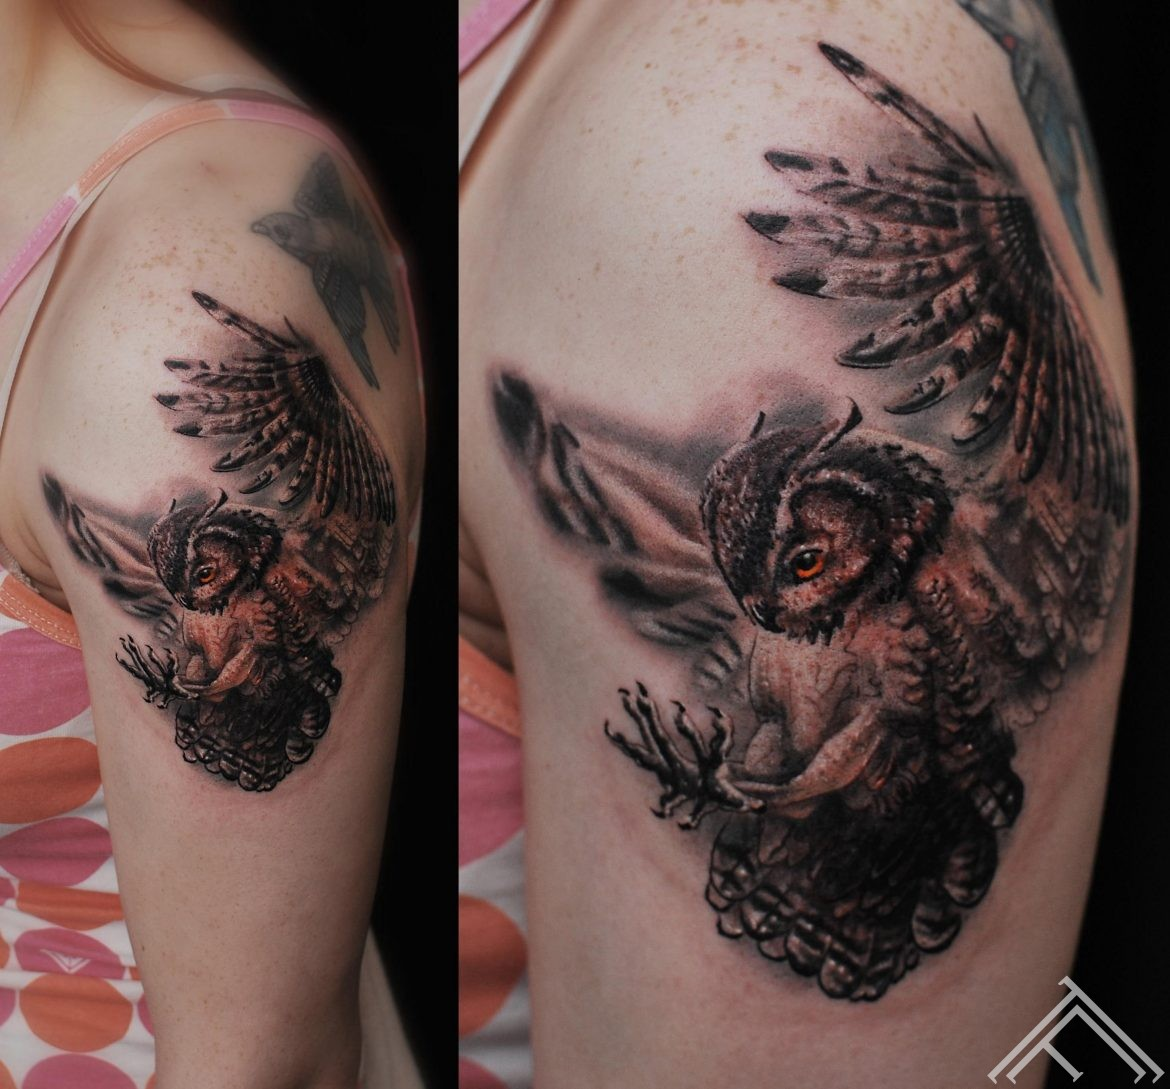 owl-bird-tattoo-tattoofrequency-riga-tattoostudioinriga